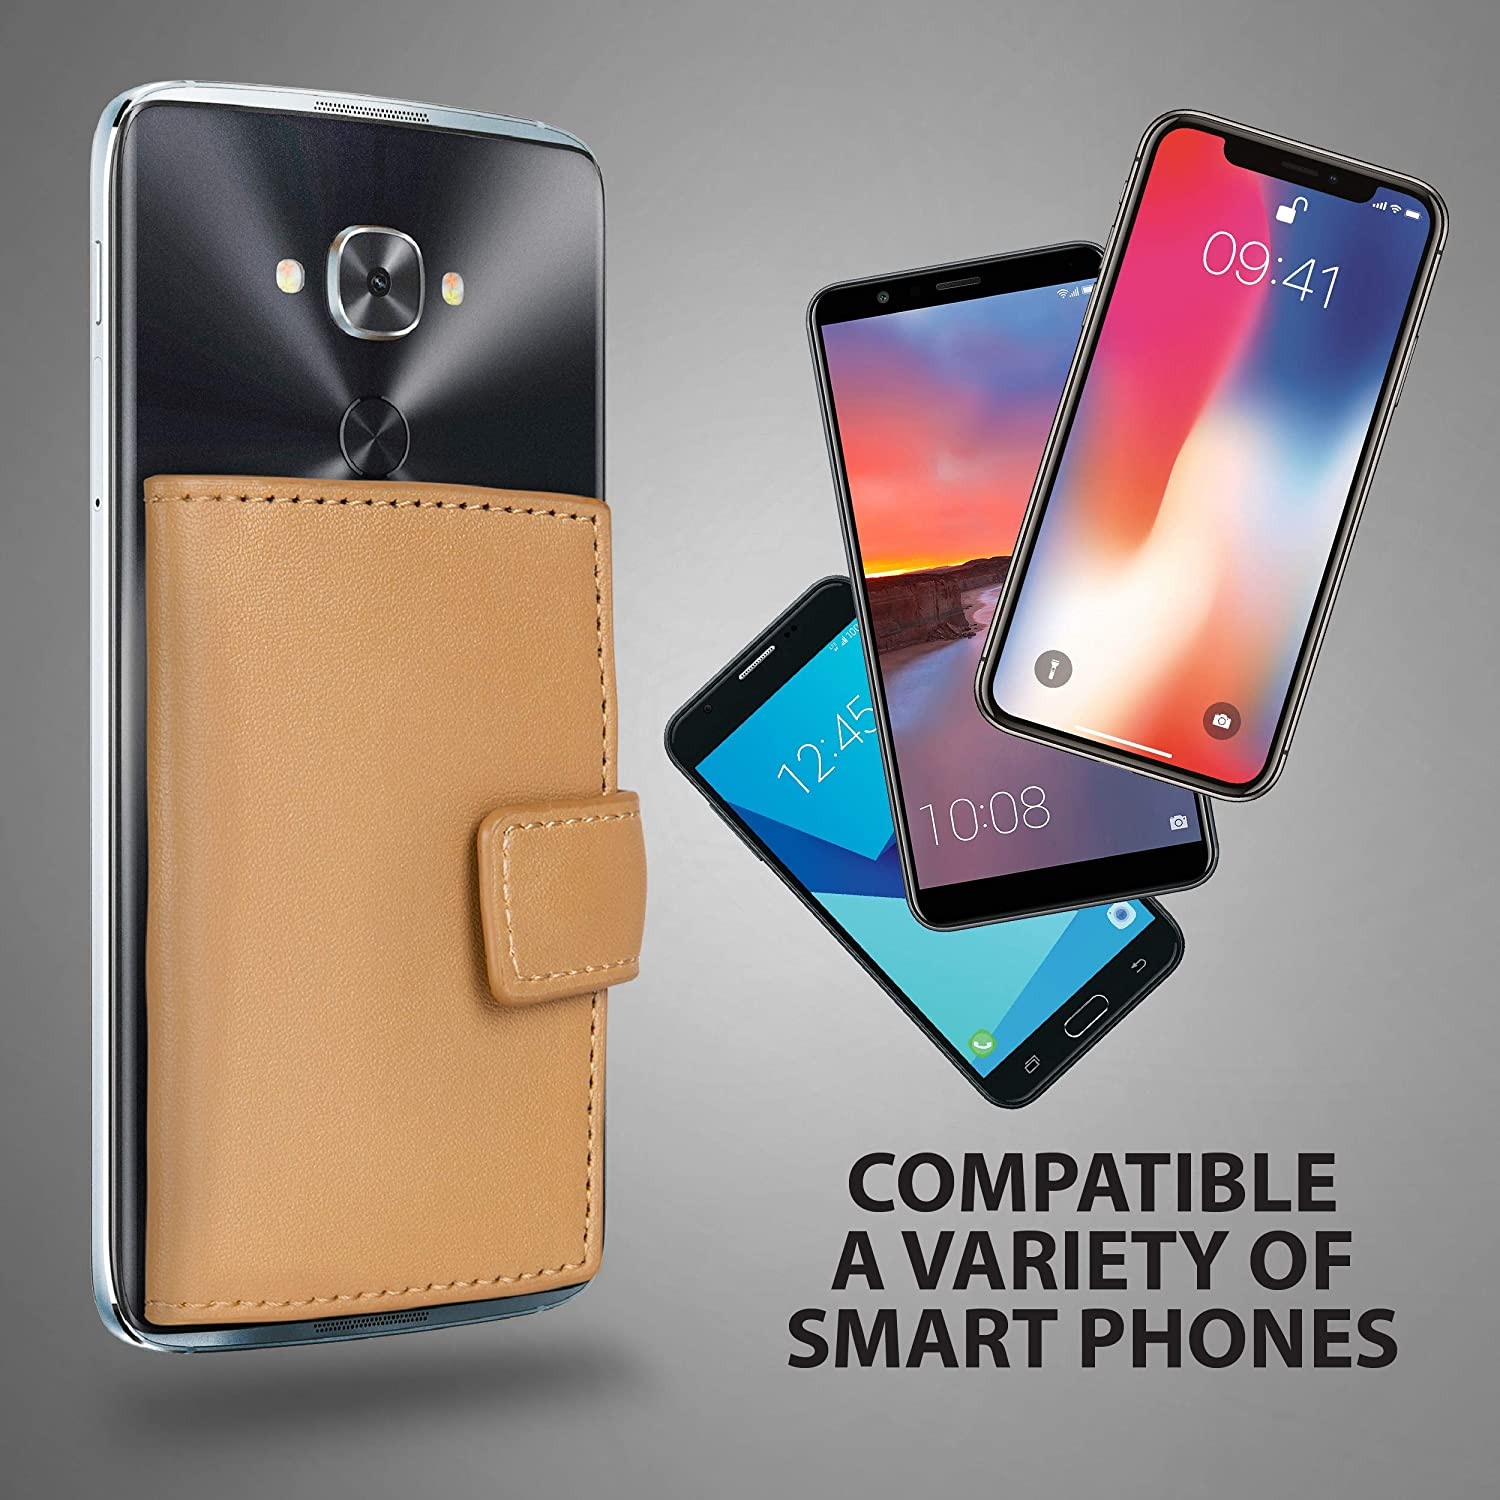 Rose Gold Uni-Yeap POS100C Portable Charger Power Bank Battery 11000mAh with Type-C//Micro USB Input 2.4A Output Fast Charge for iPhone iPad Samsung Huawei and All Smart Phones